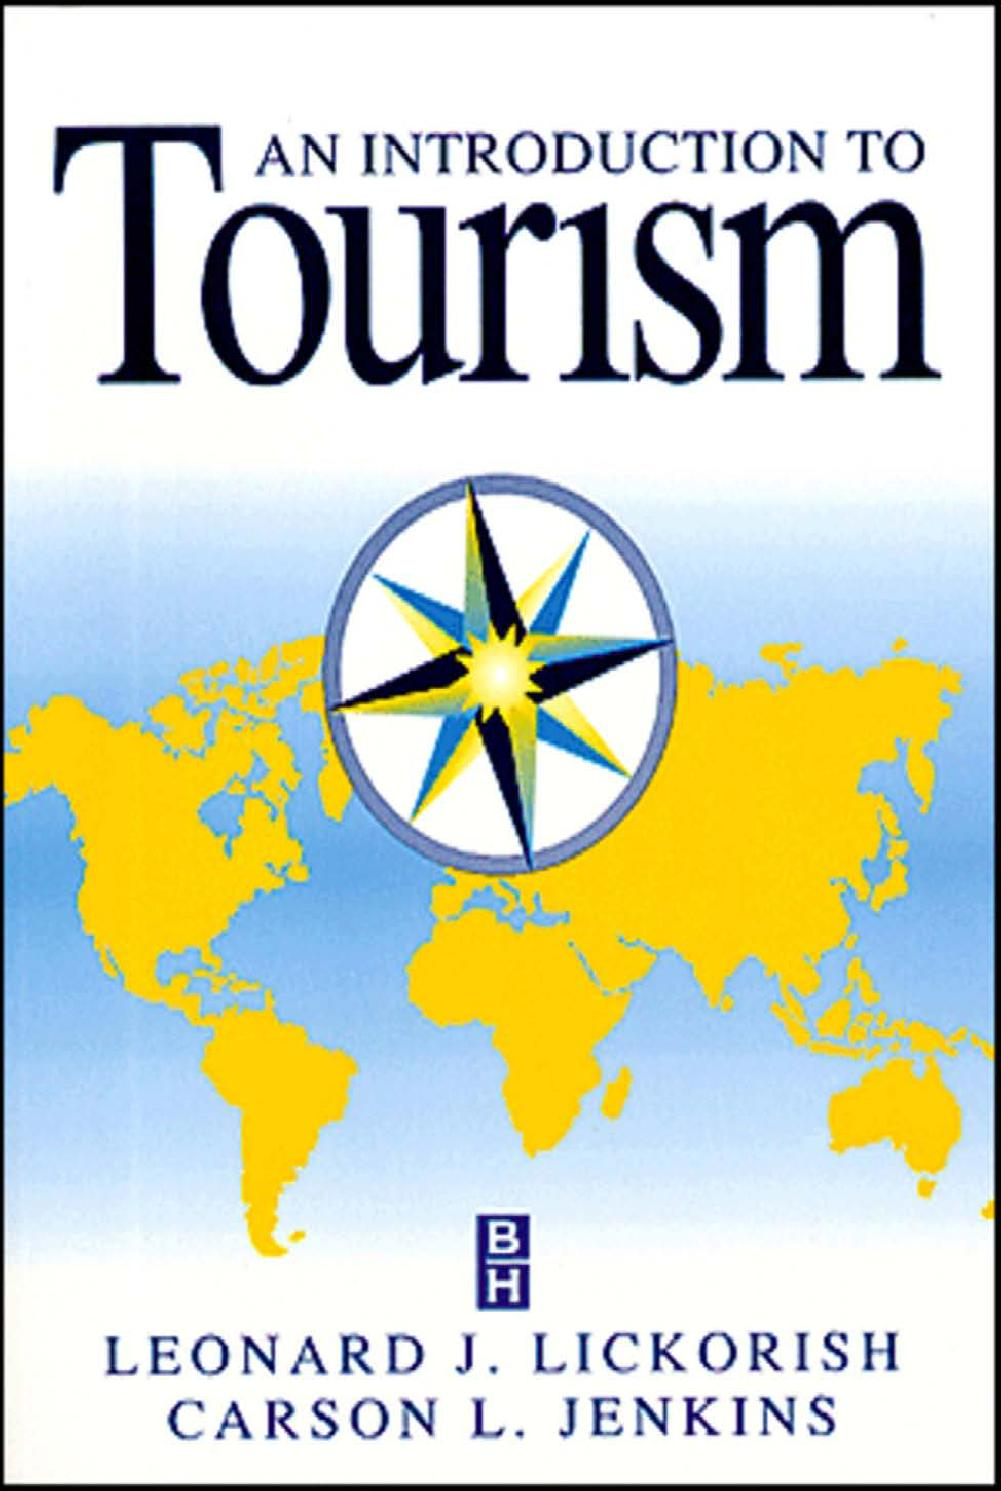 leonard j lickorish carson l jenkins 1997 an introduction to tourism Introduction to tourism ebook: leonard j lickorish, carson l jenkins: amazoncomau: by leonard j lickorish (author), carson l jenkins (author) it provides a comprehensive and authoritative introduction to all facets of tourism including.